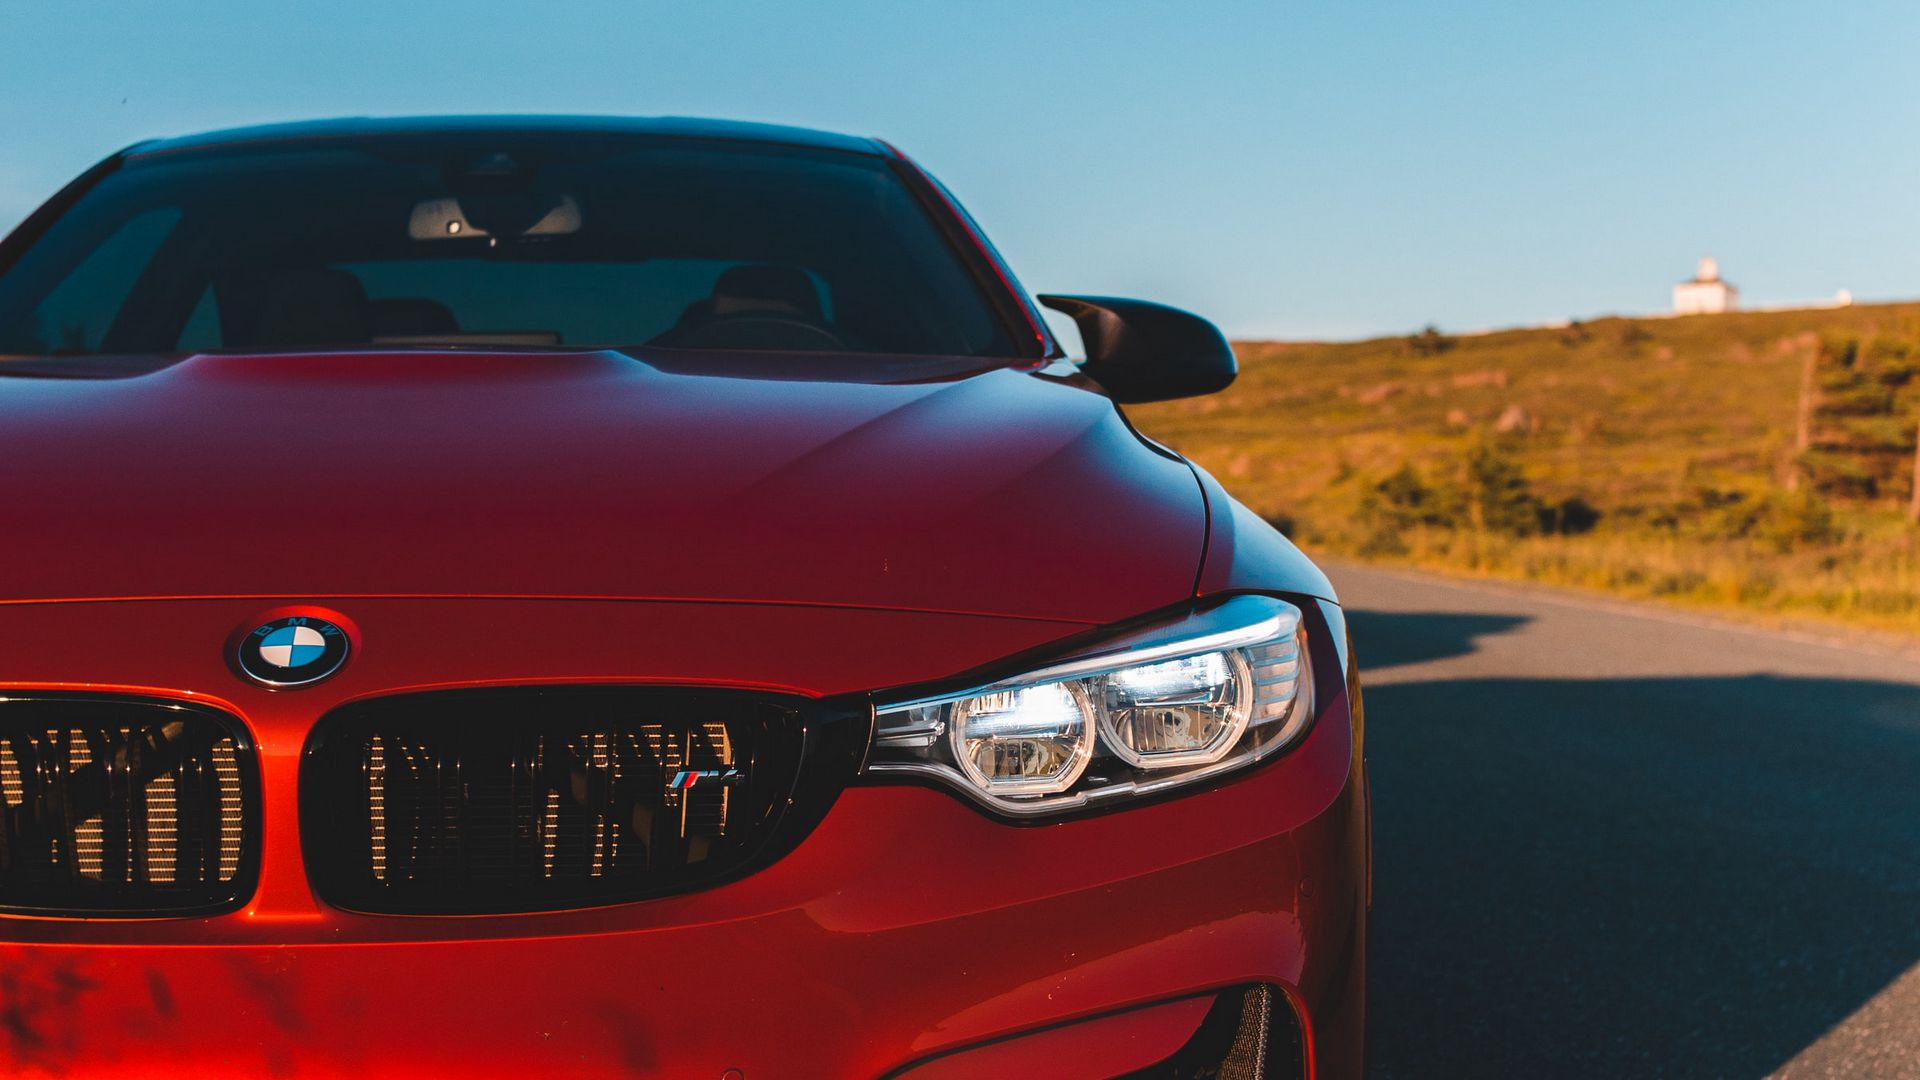 Red BMW M4 Front View